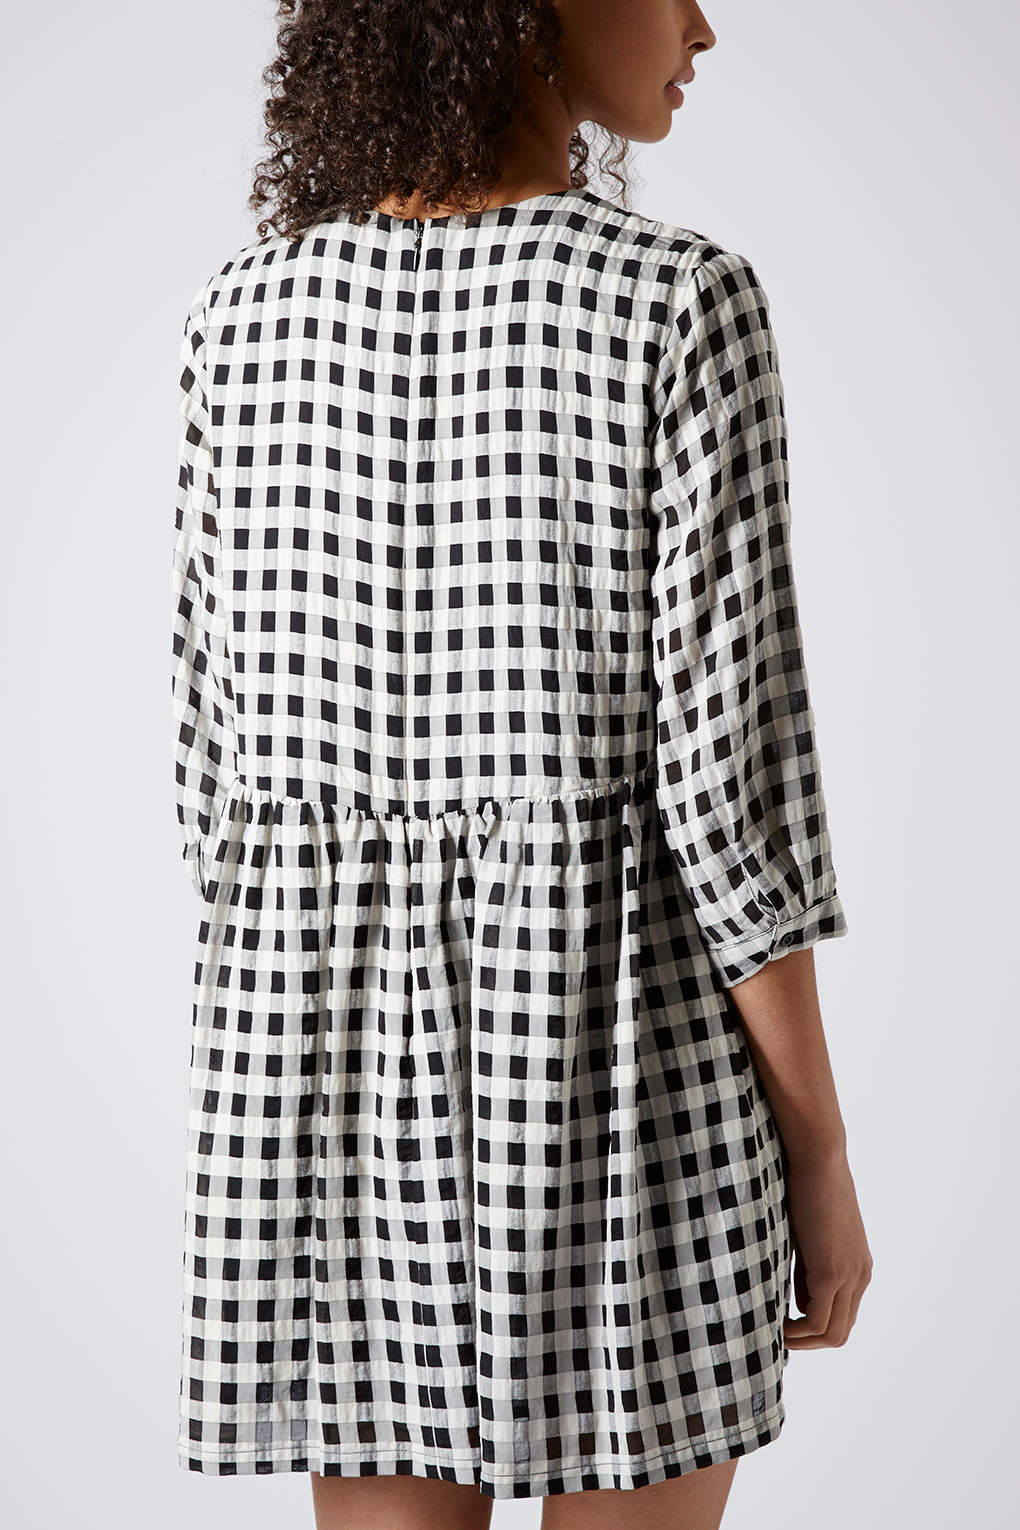 Topshop Searsucker Gingham Smock Dress In Monochrome